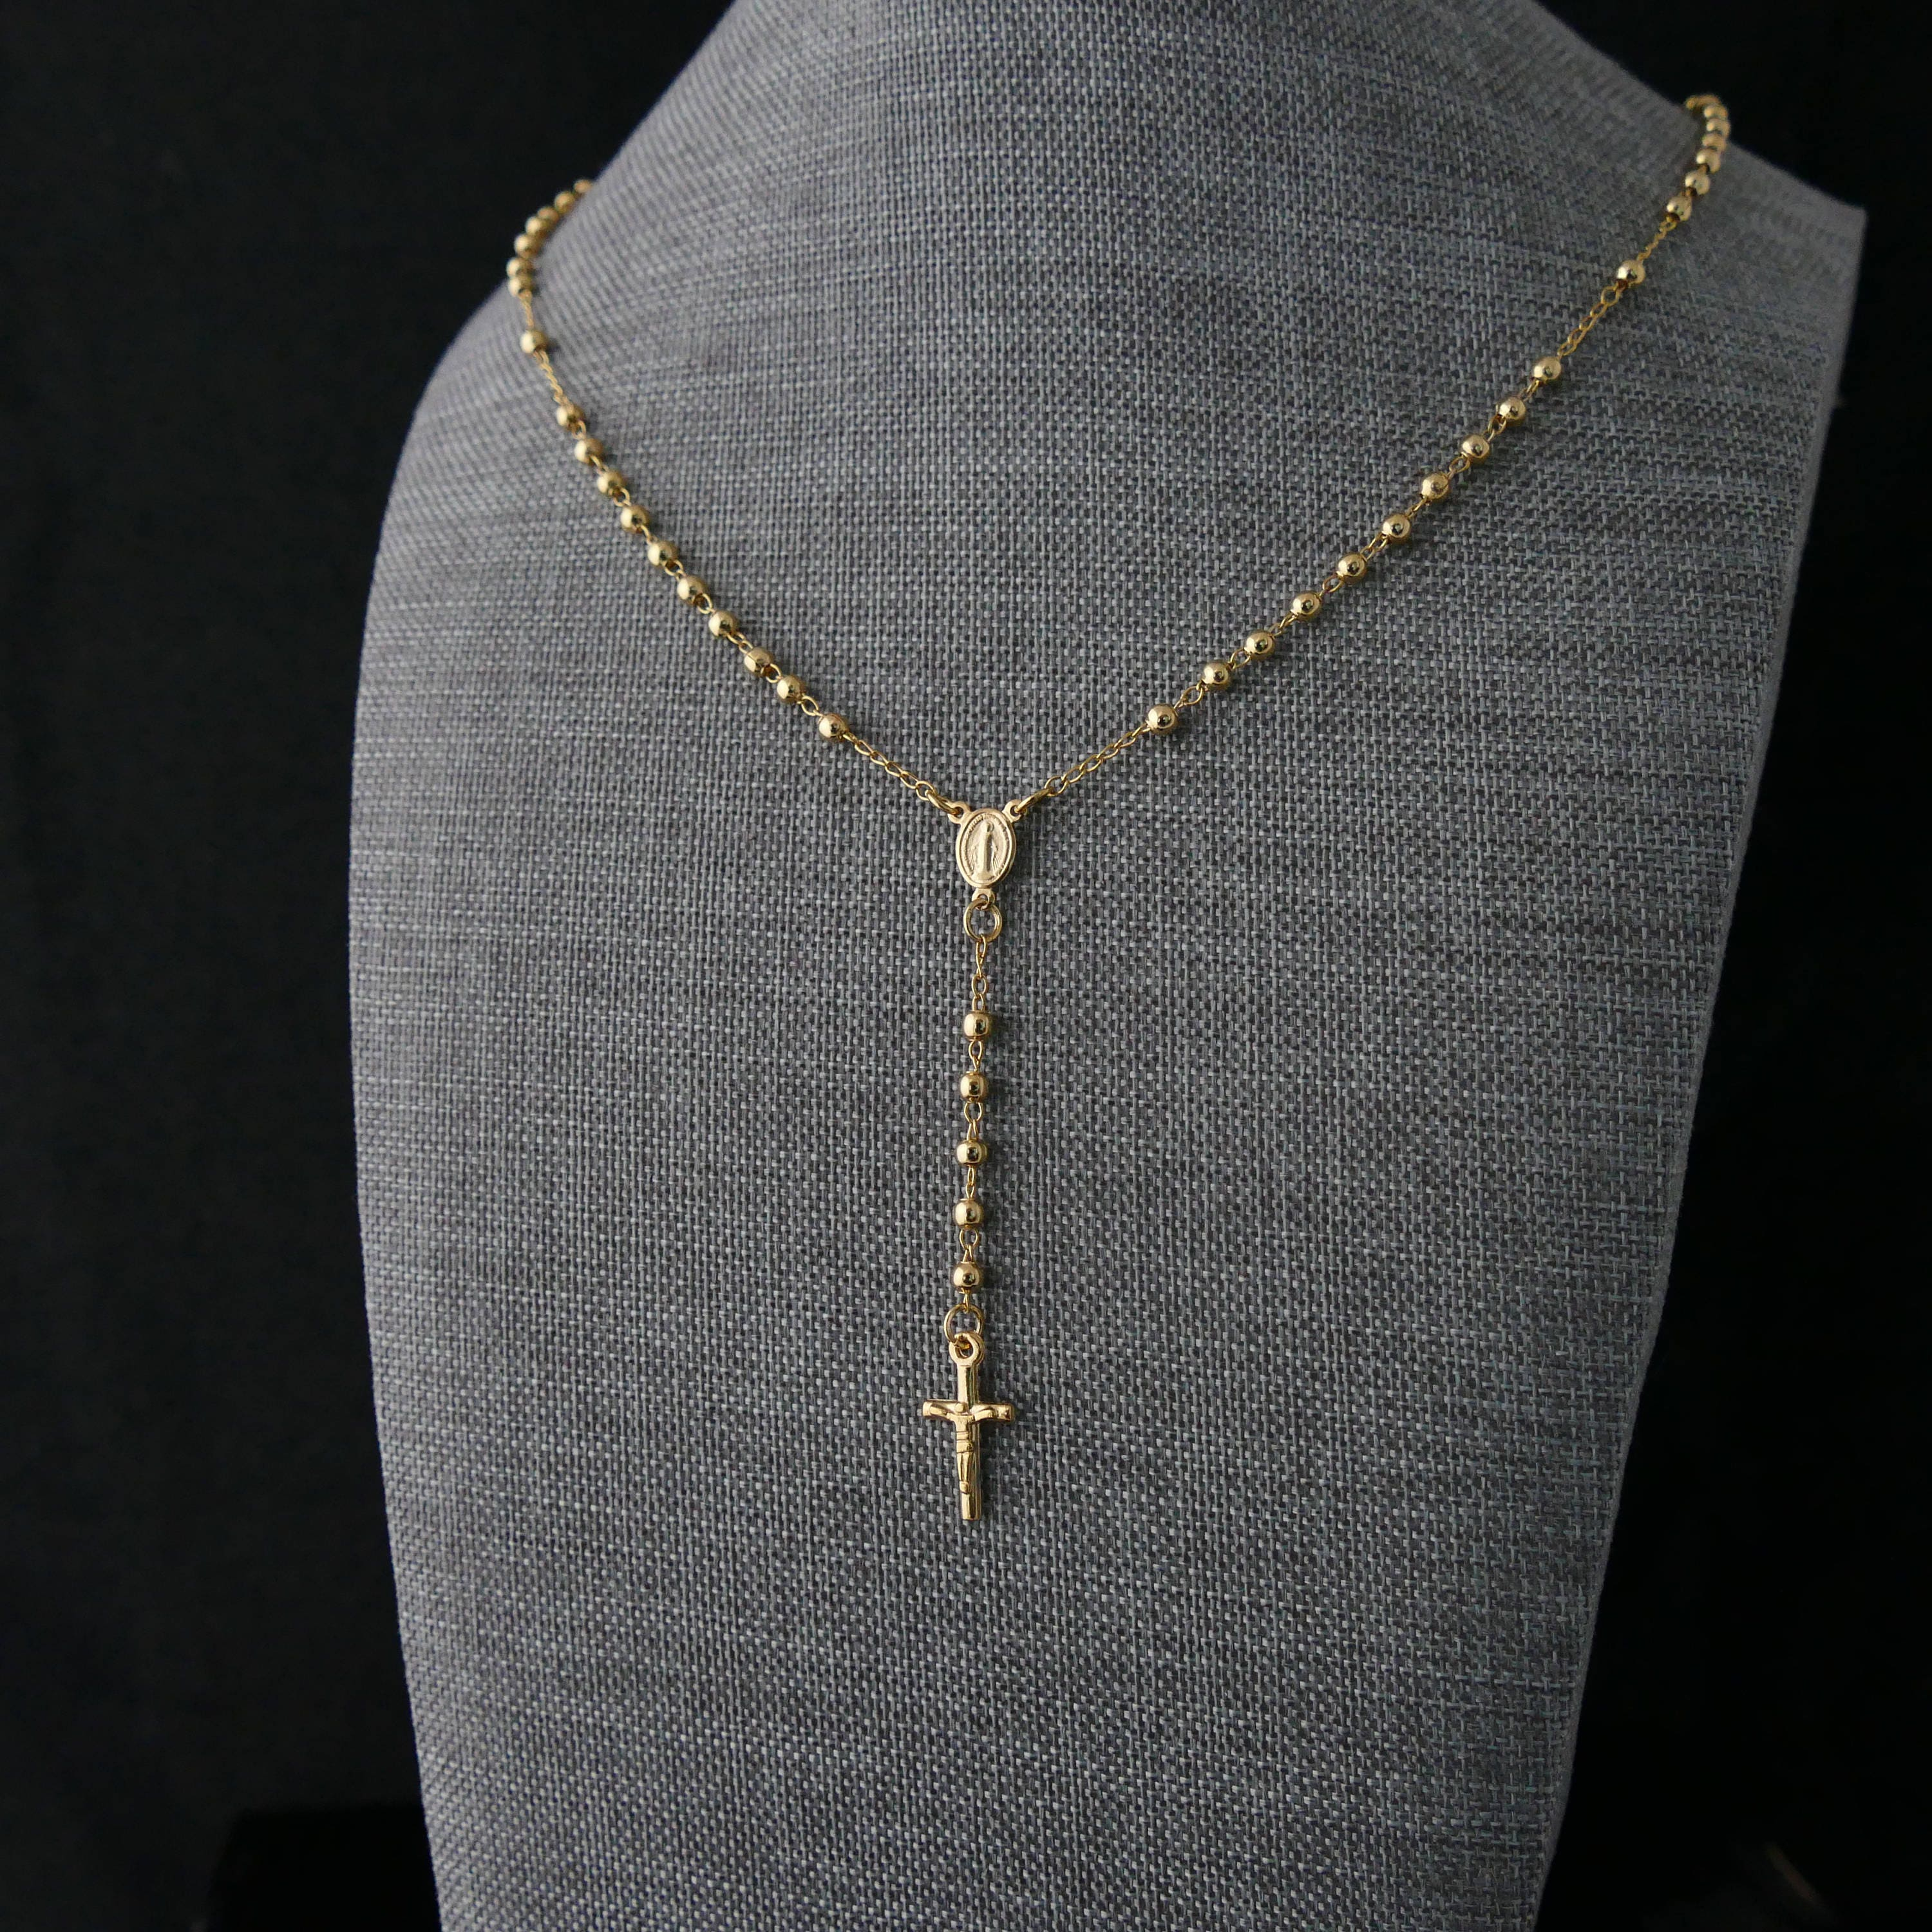 Rosary Necklace Gold Rosary Necklace Rosary Gold Rosary Gold